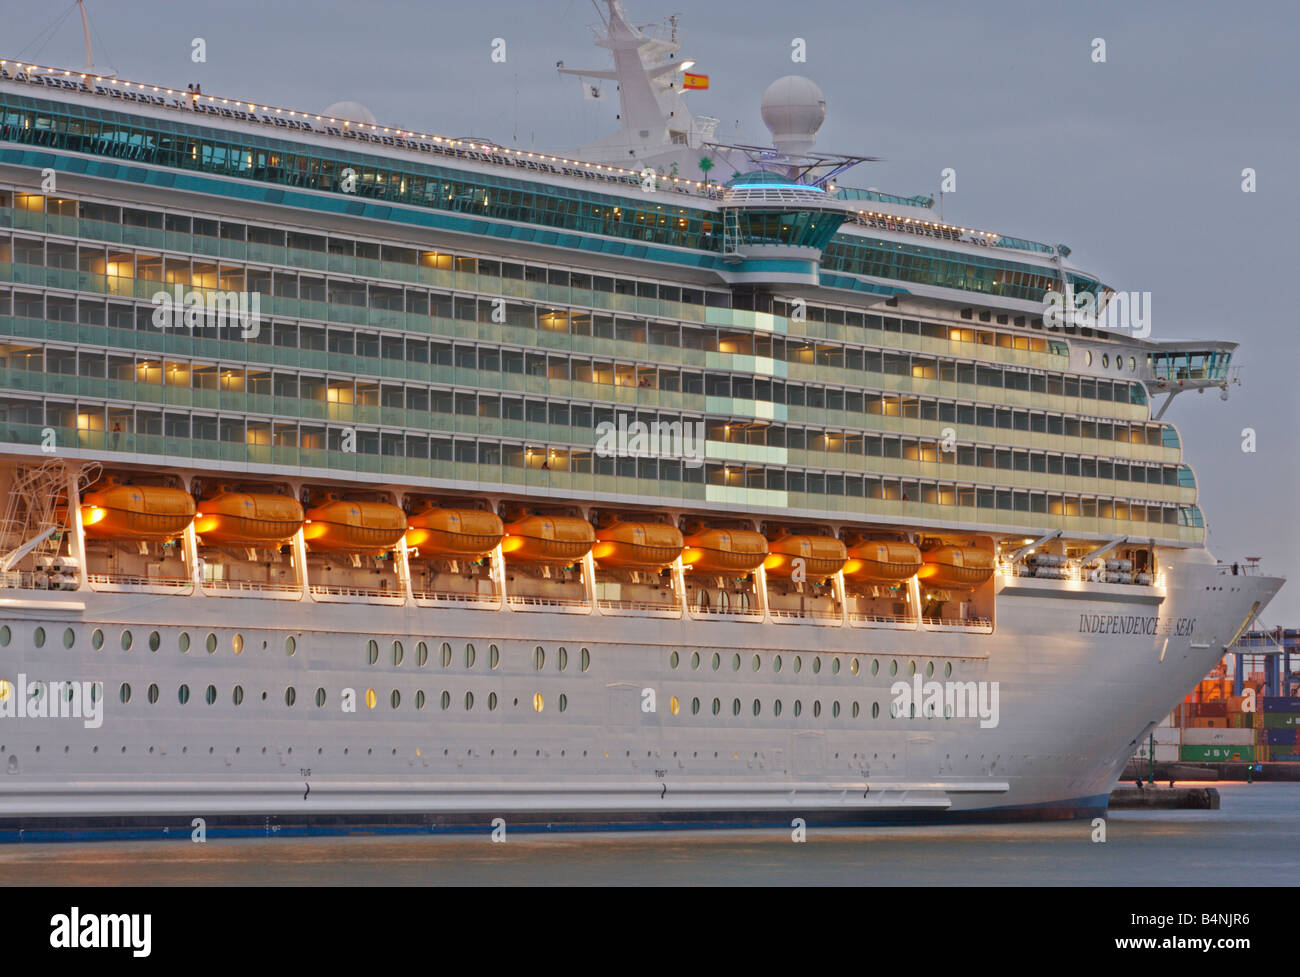 The world's largest cruise ship, Independence of the Seas ...